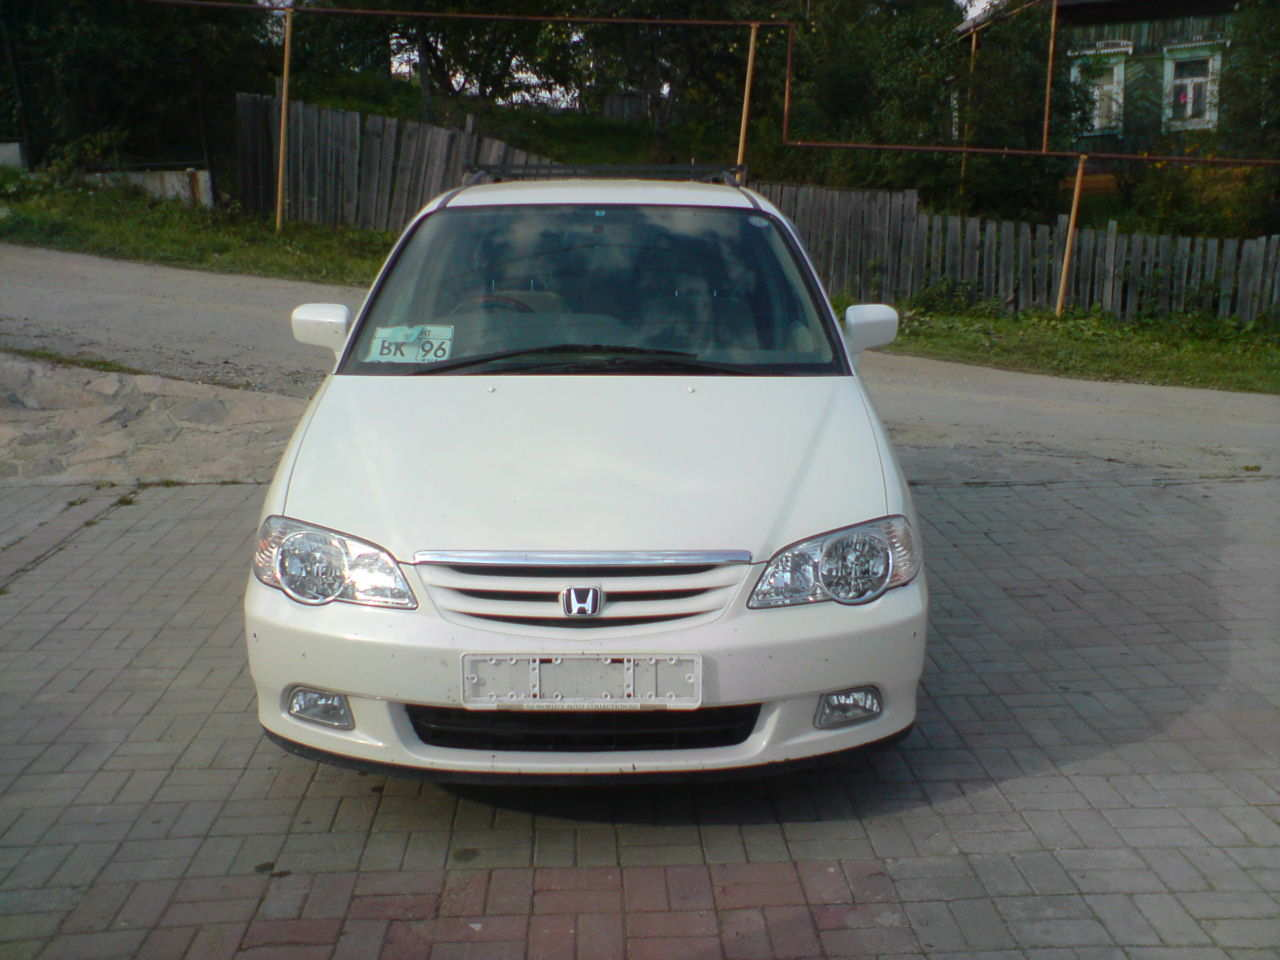 used 2001 honda odyssey photos 2300cc gasoline ff automatic for sale. Black Bedroom Furniture Sets. Home Design Ideas